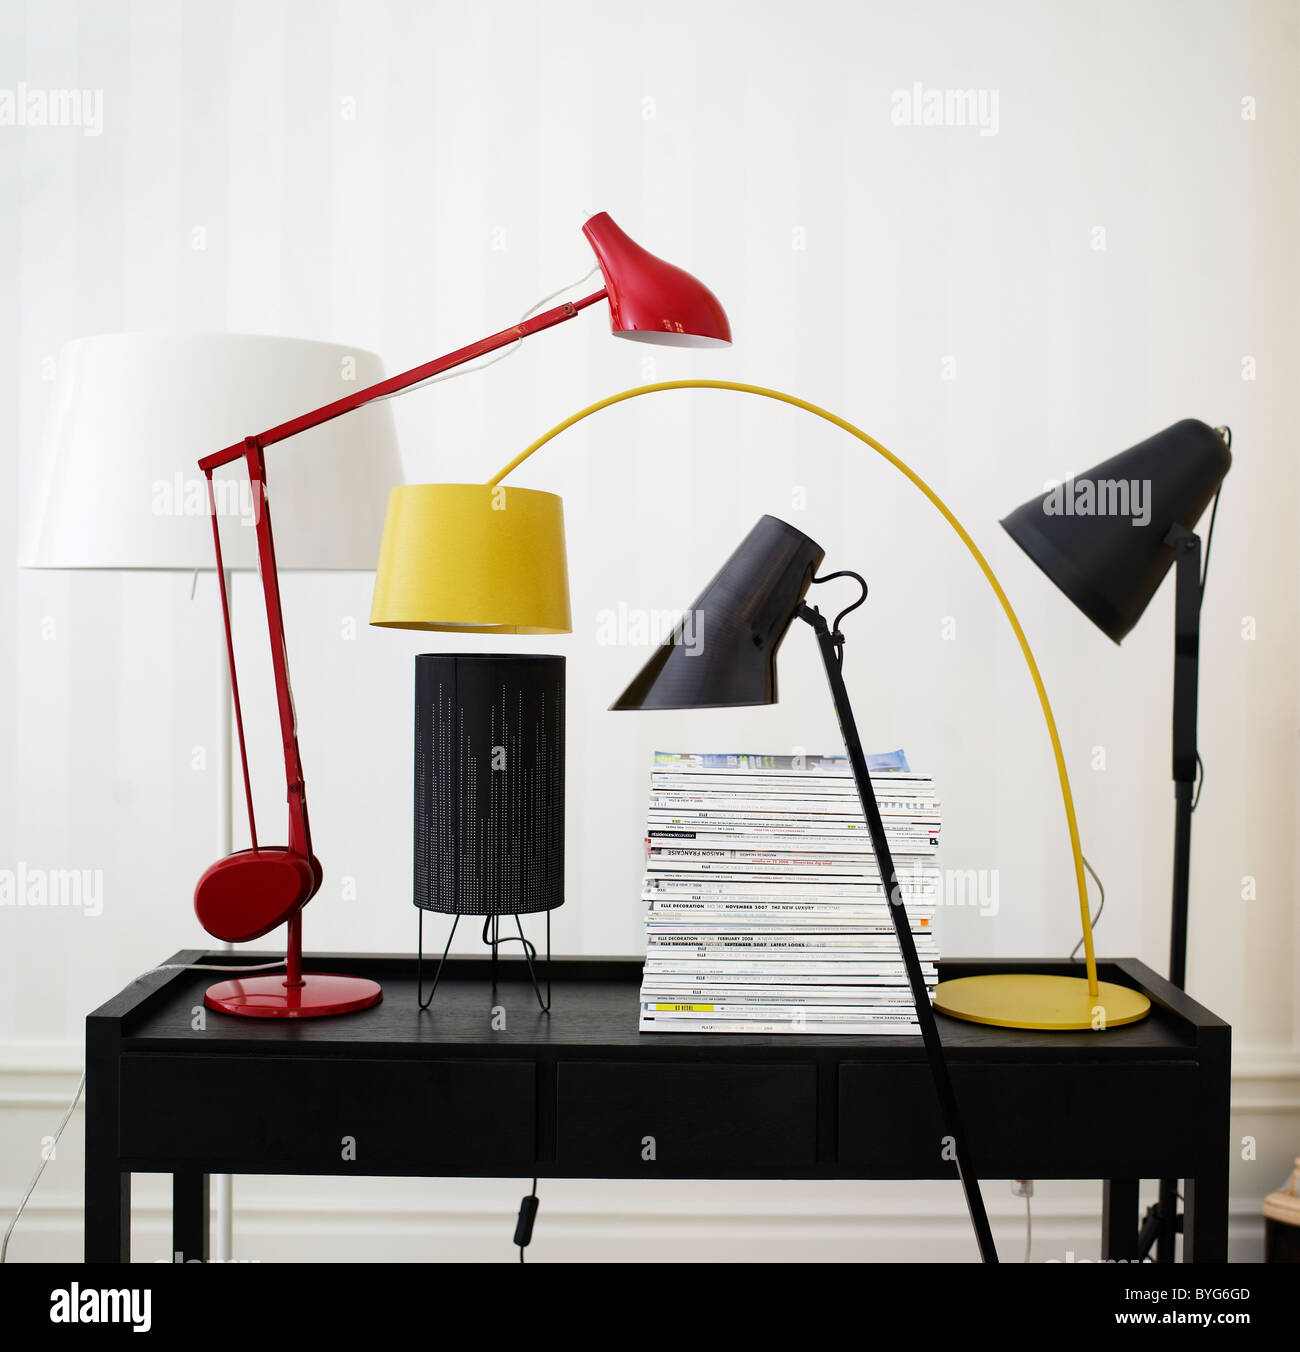 Variety of modern design lamps on top of desk - Stock Image